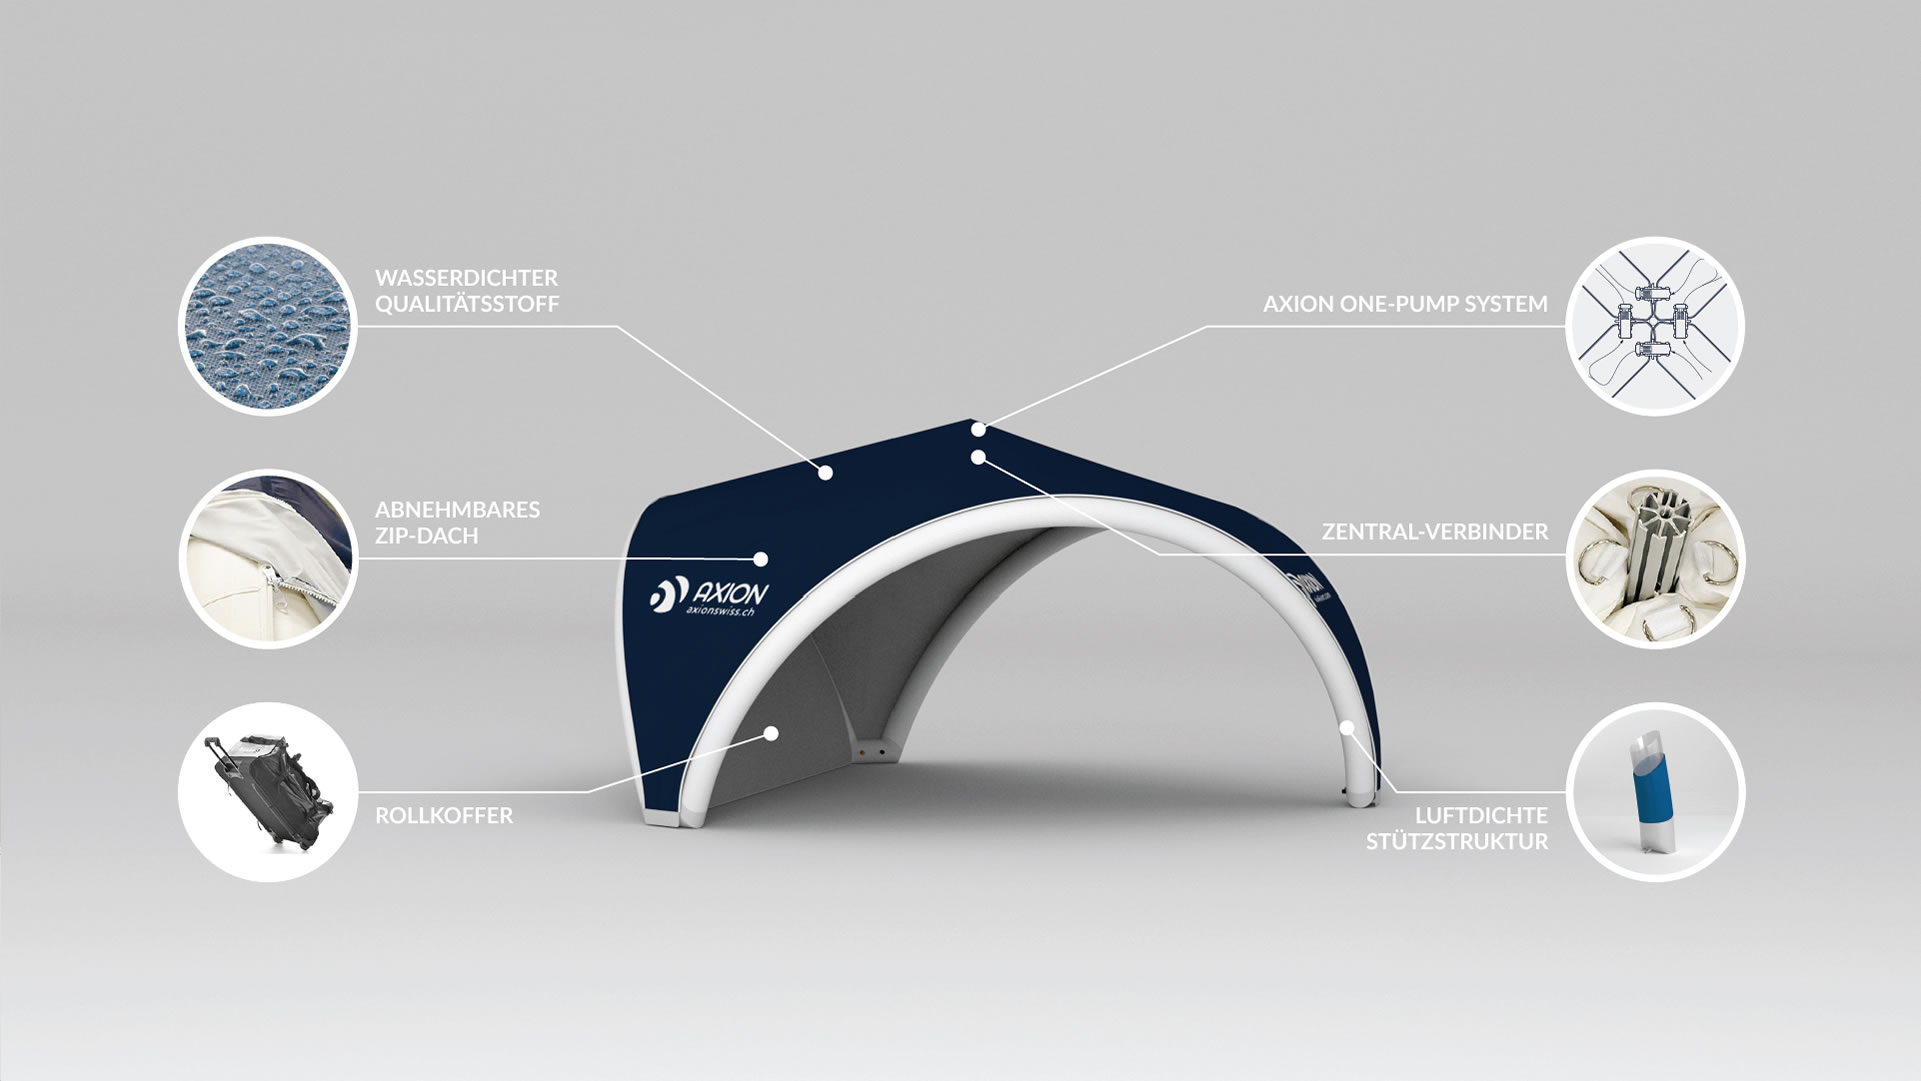 axion-tripod-tent_main-feature